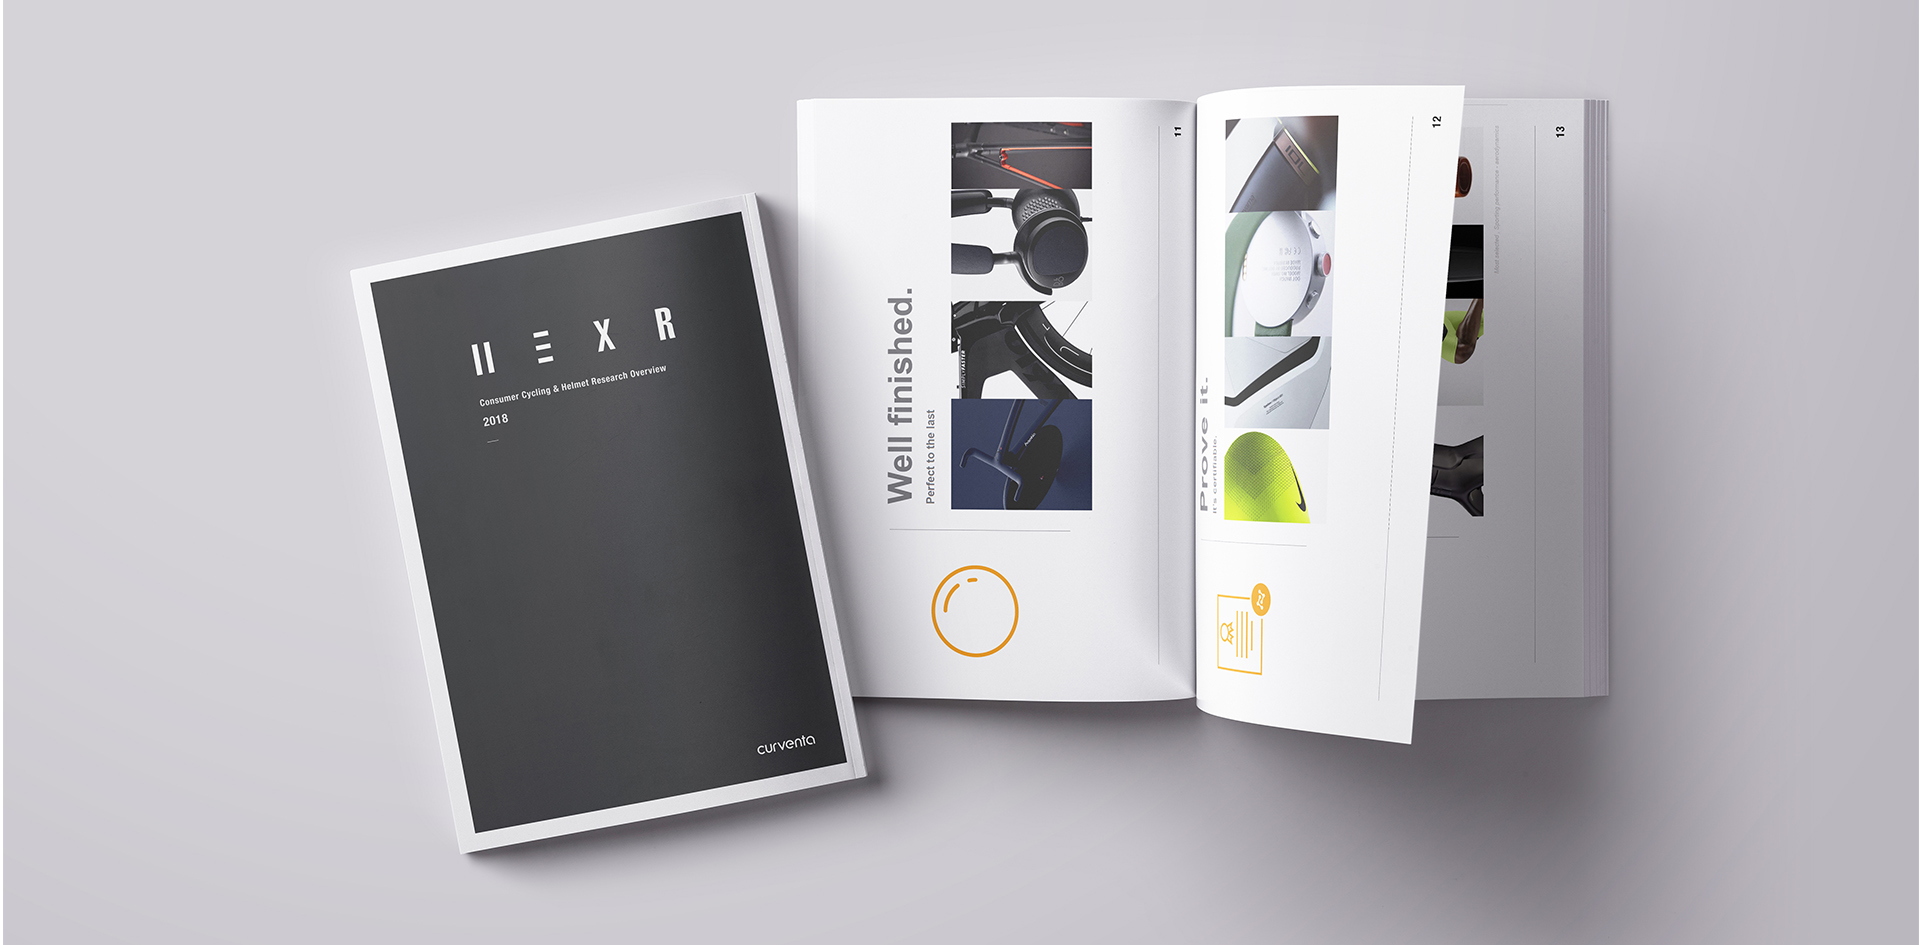 Hexr | Consumer cycling research booklet